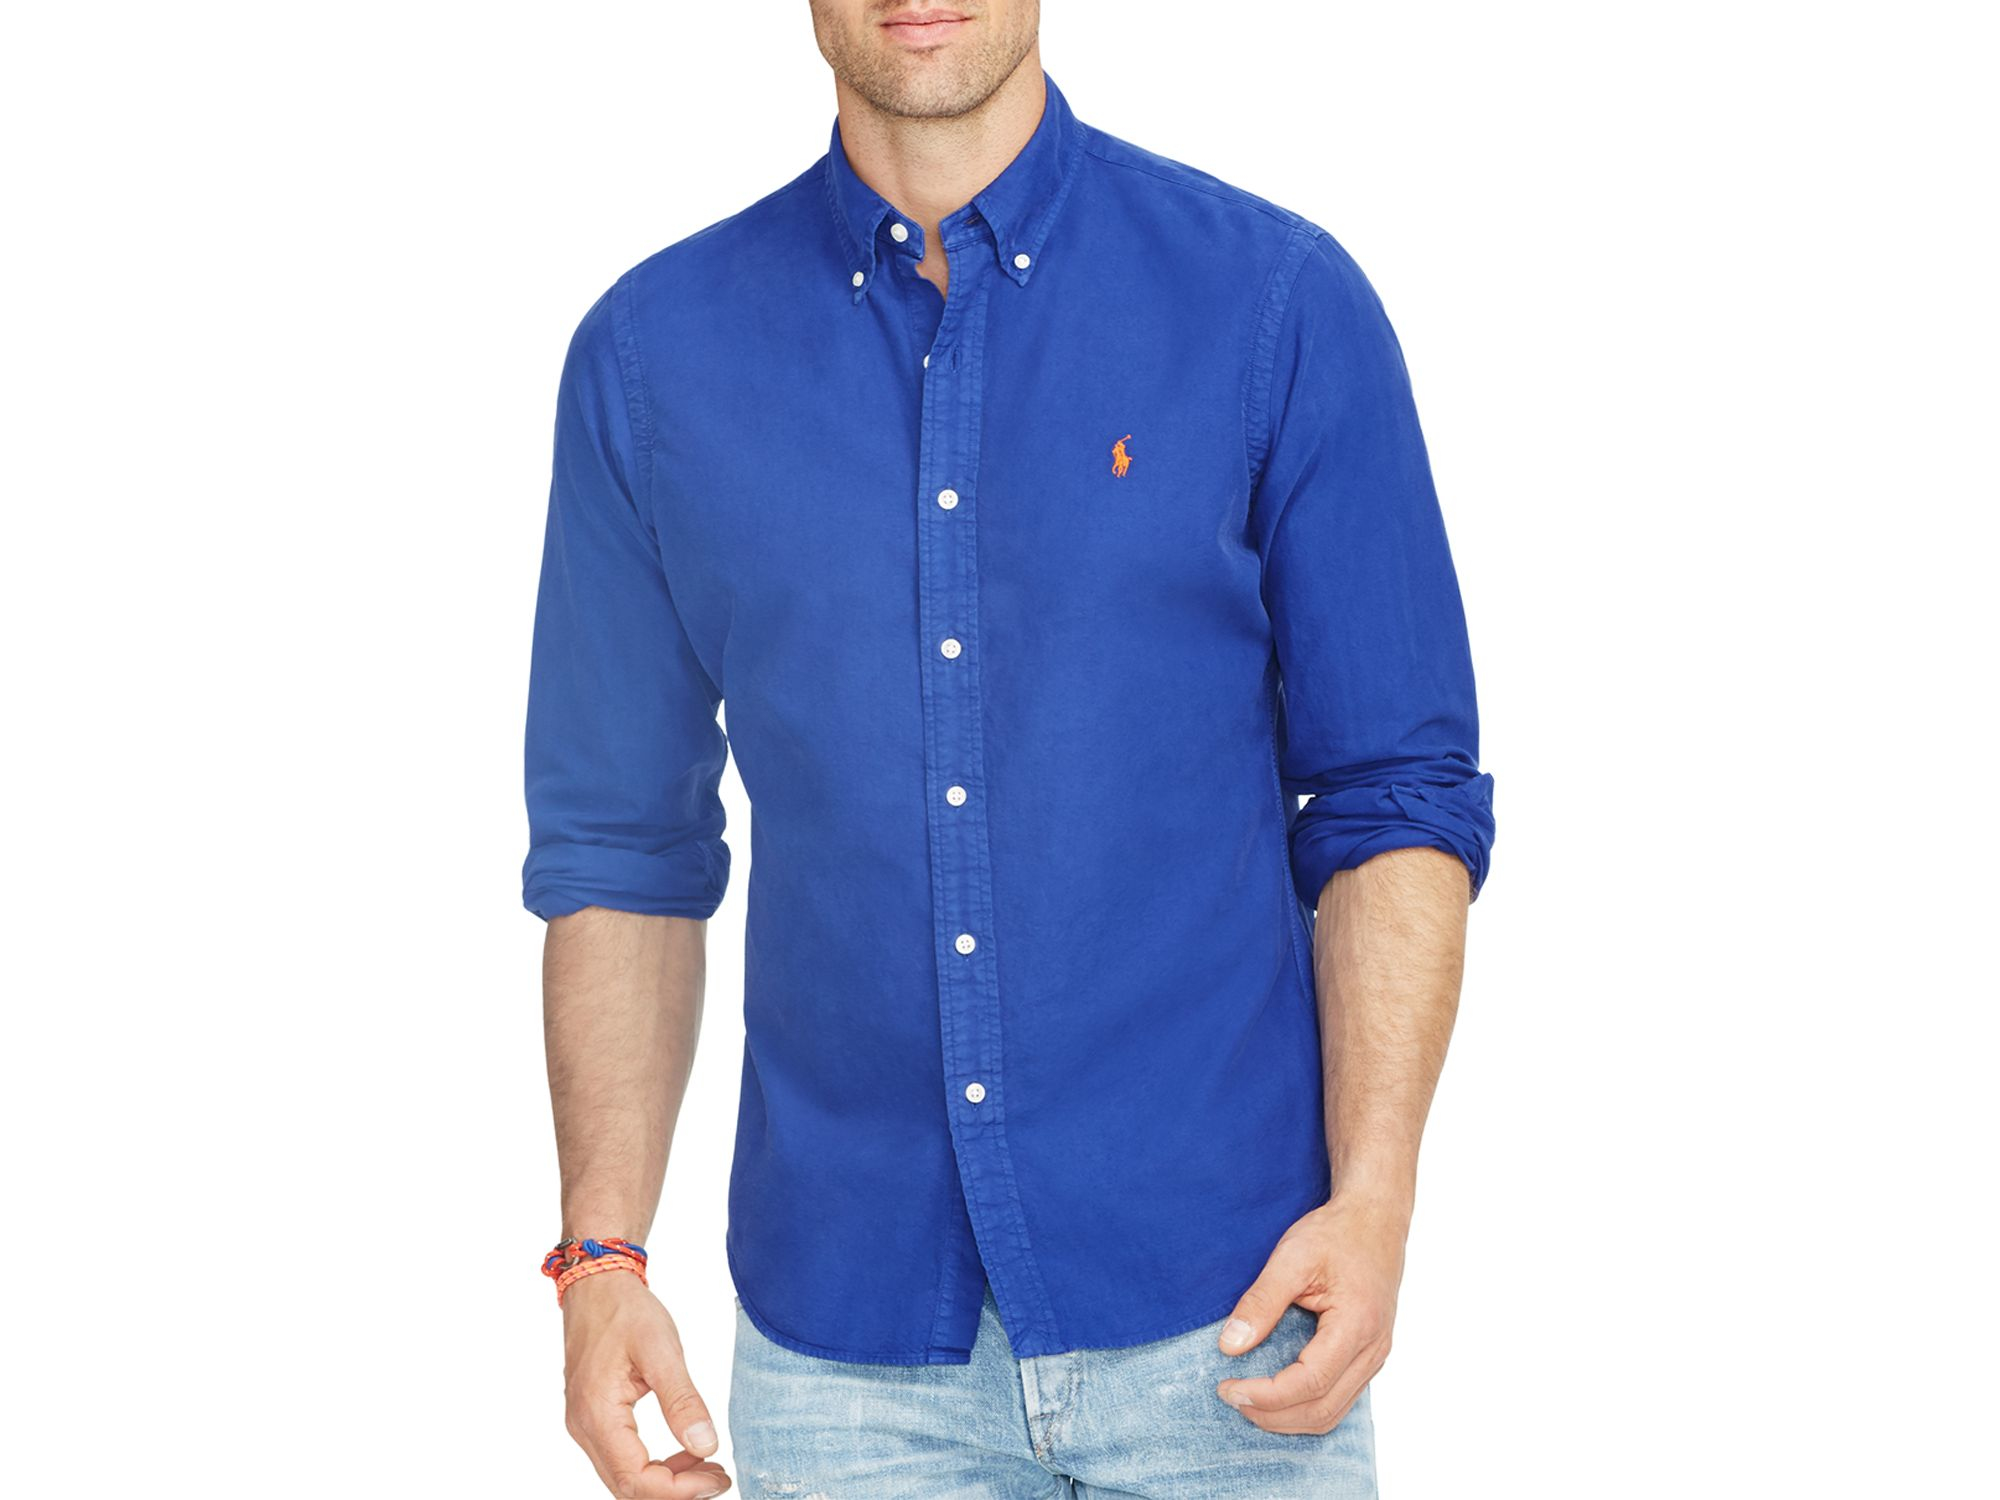 ralph lauren polo oxford shirt in blue for men lyst. Black Bedroom Furniture Sets. Home Design Ideas